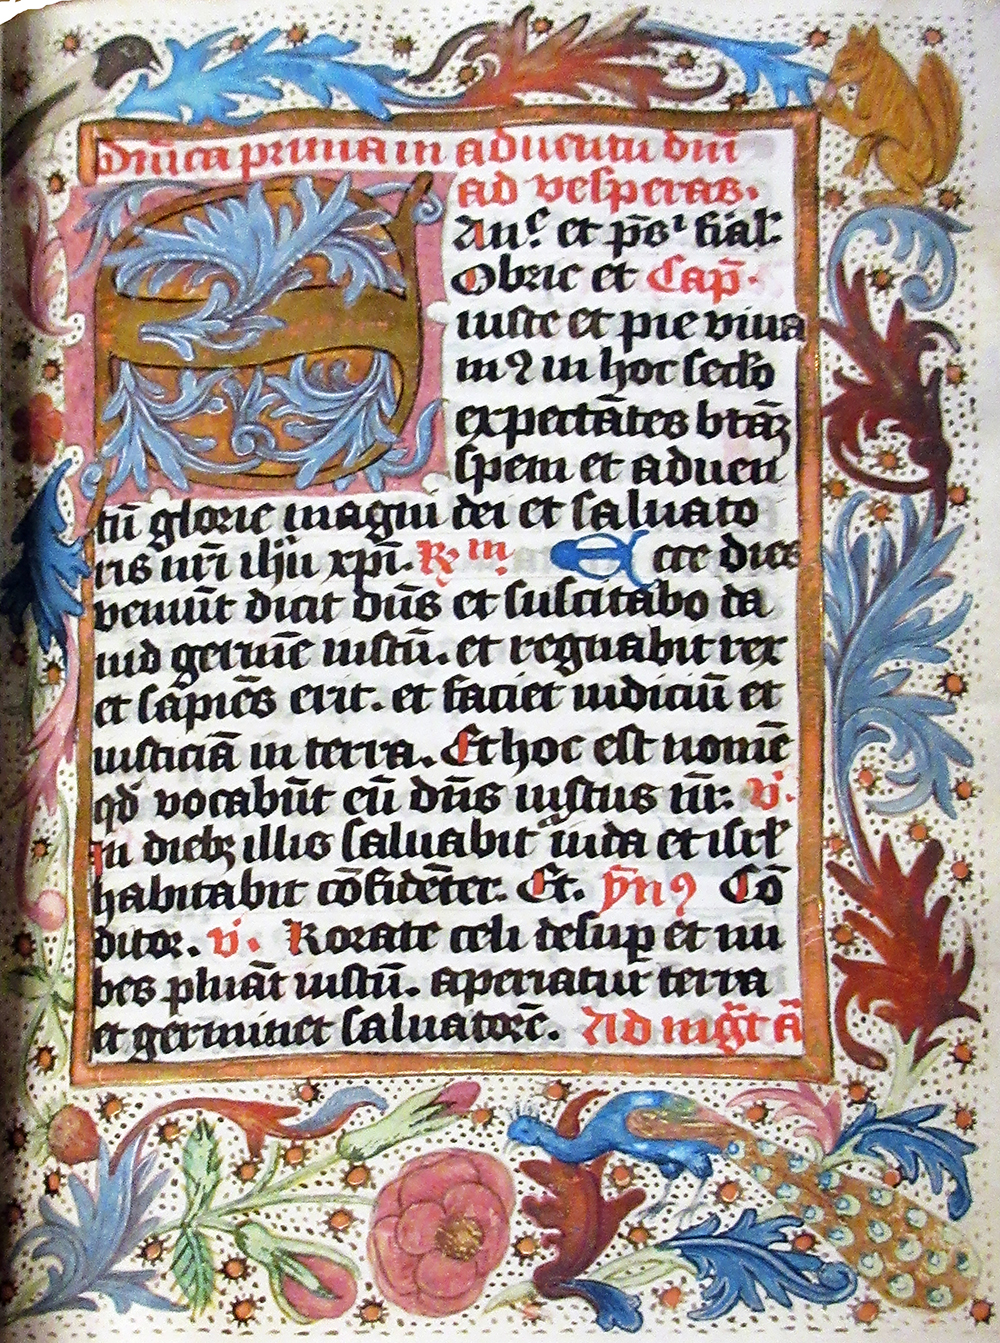 Page from Breviary